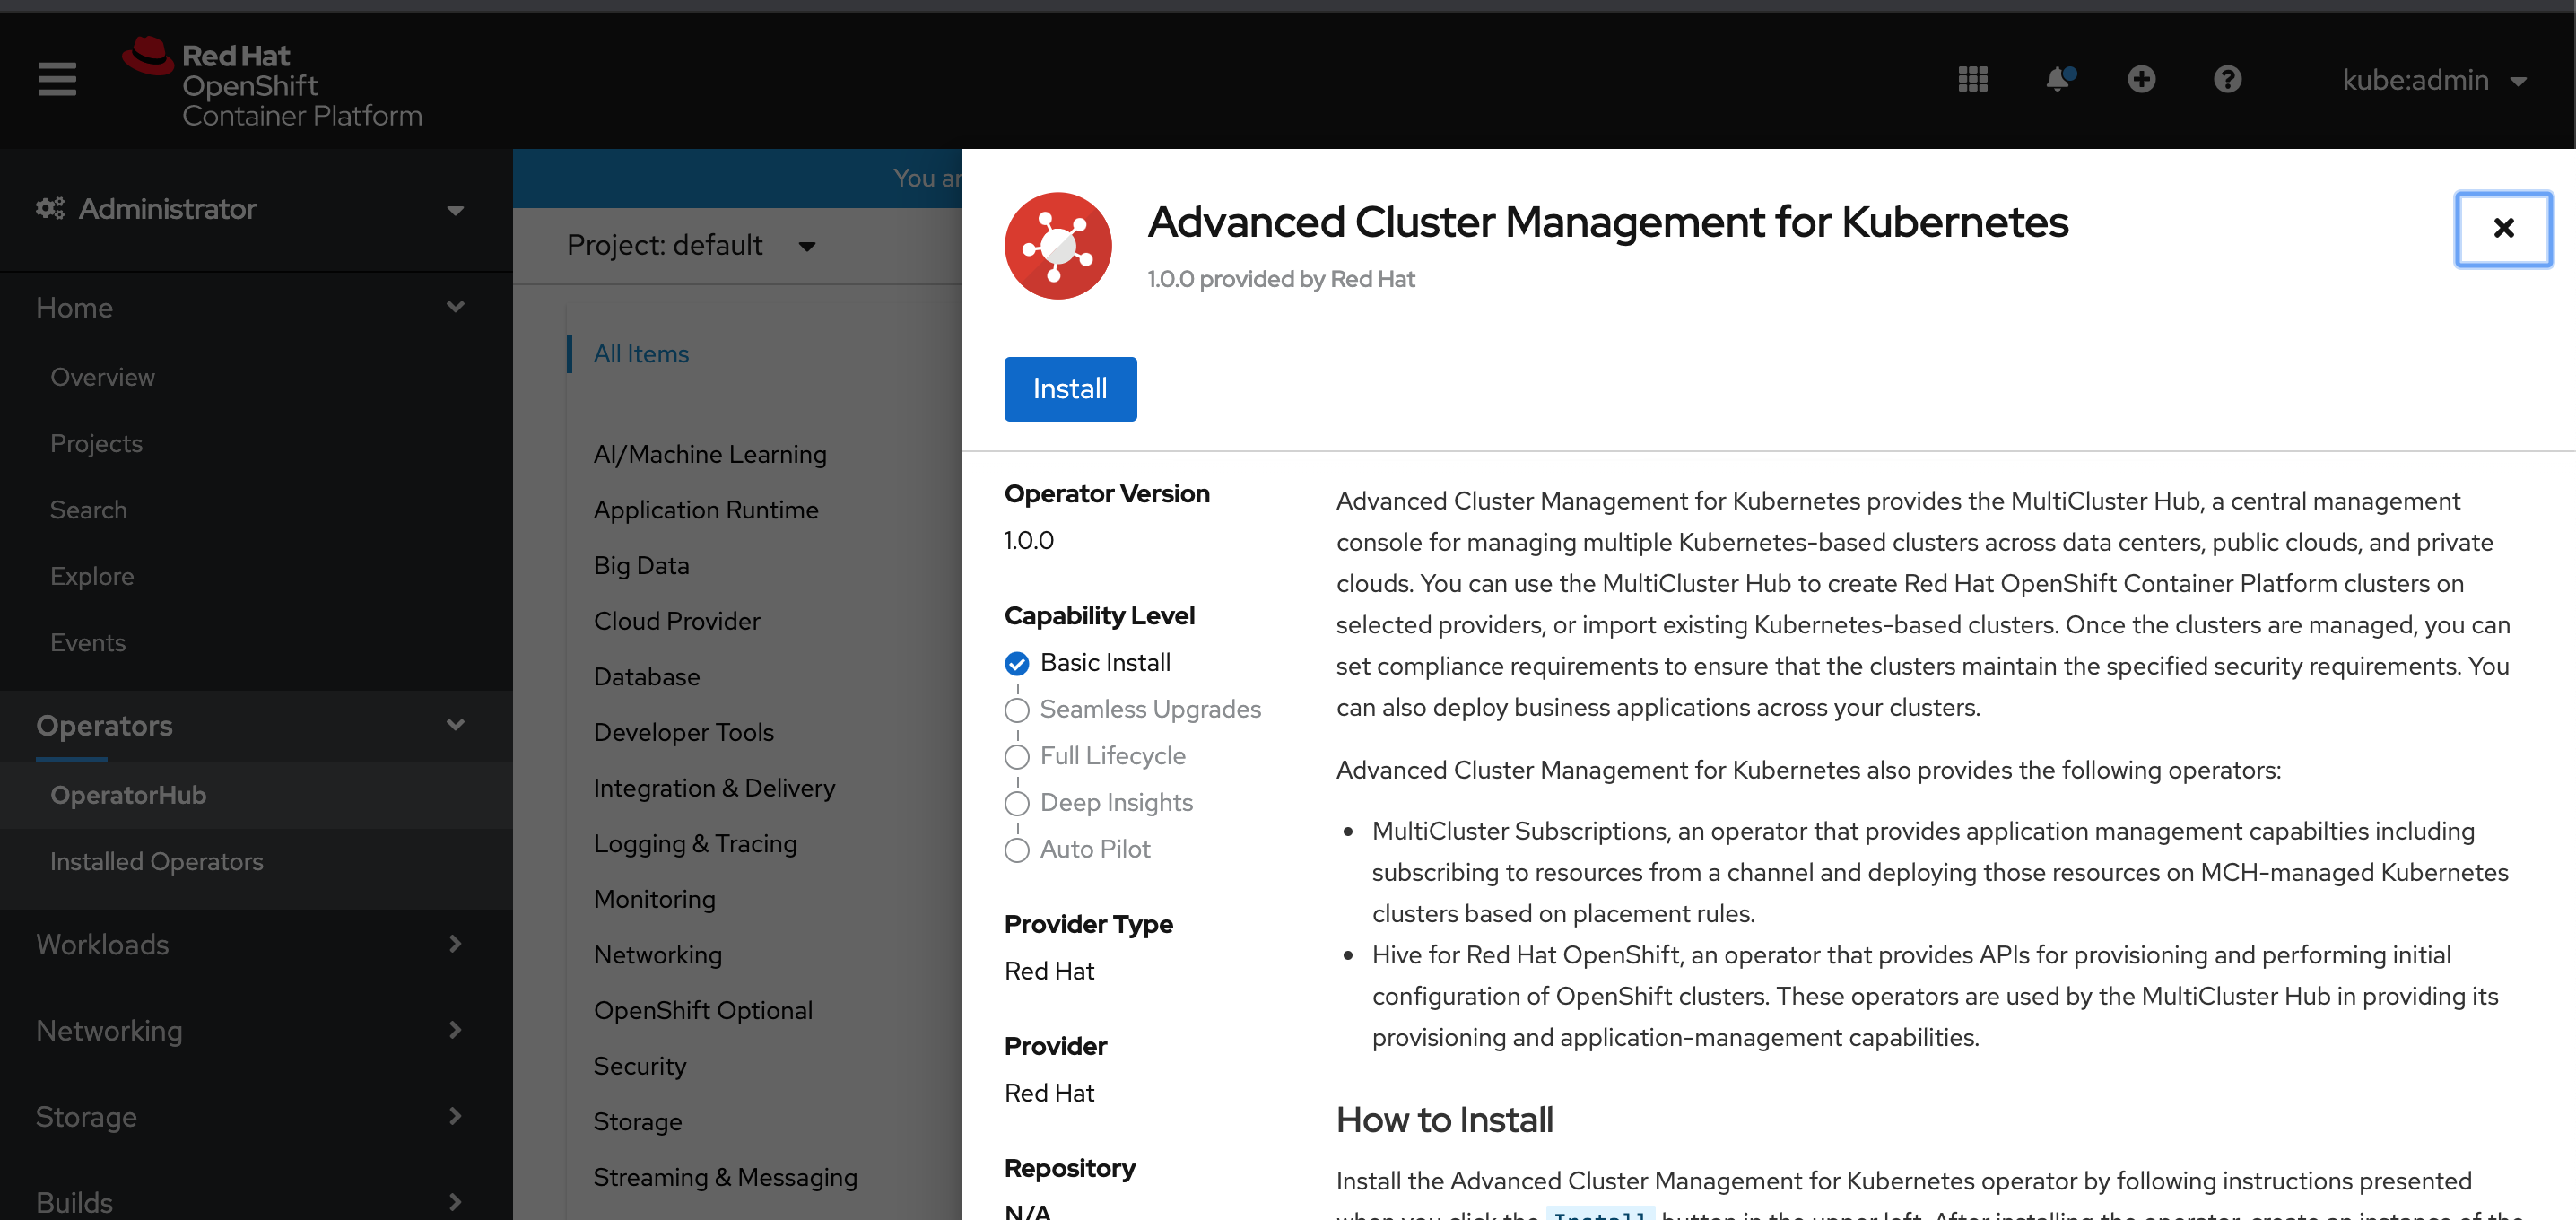 Installing Red Hat Advanced Cluster Management (ACM) for Kubernetes